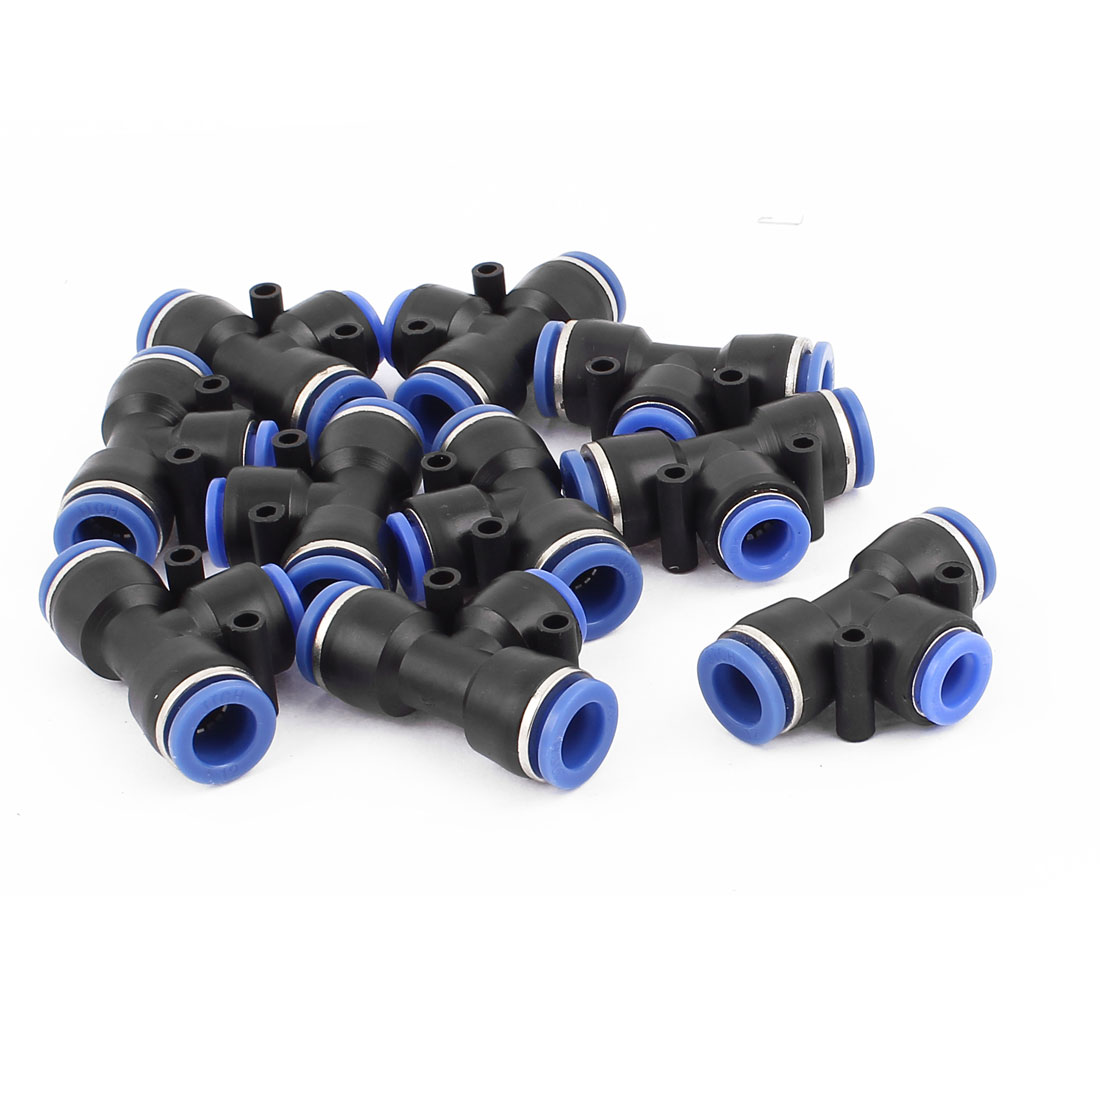 10 Pcs 3 Ways 12mm to 10mm T Shape Air Pneumatic Quick Joint Fittings